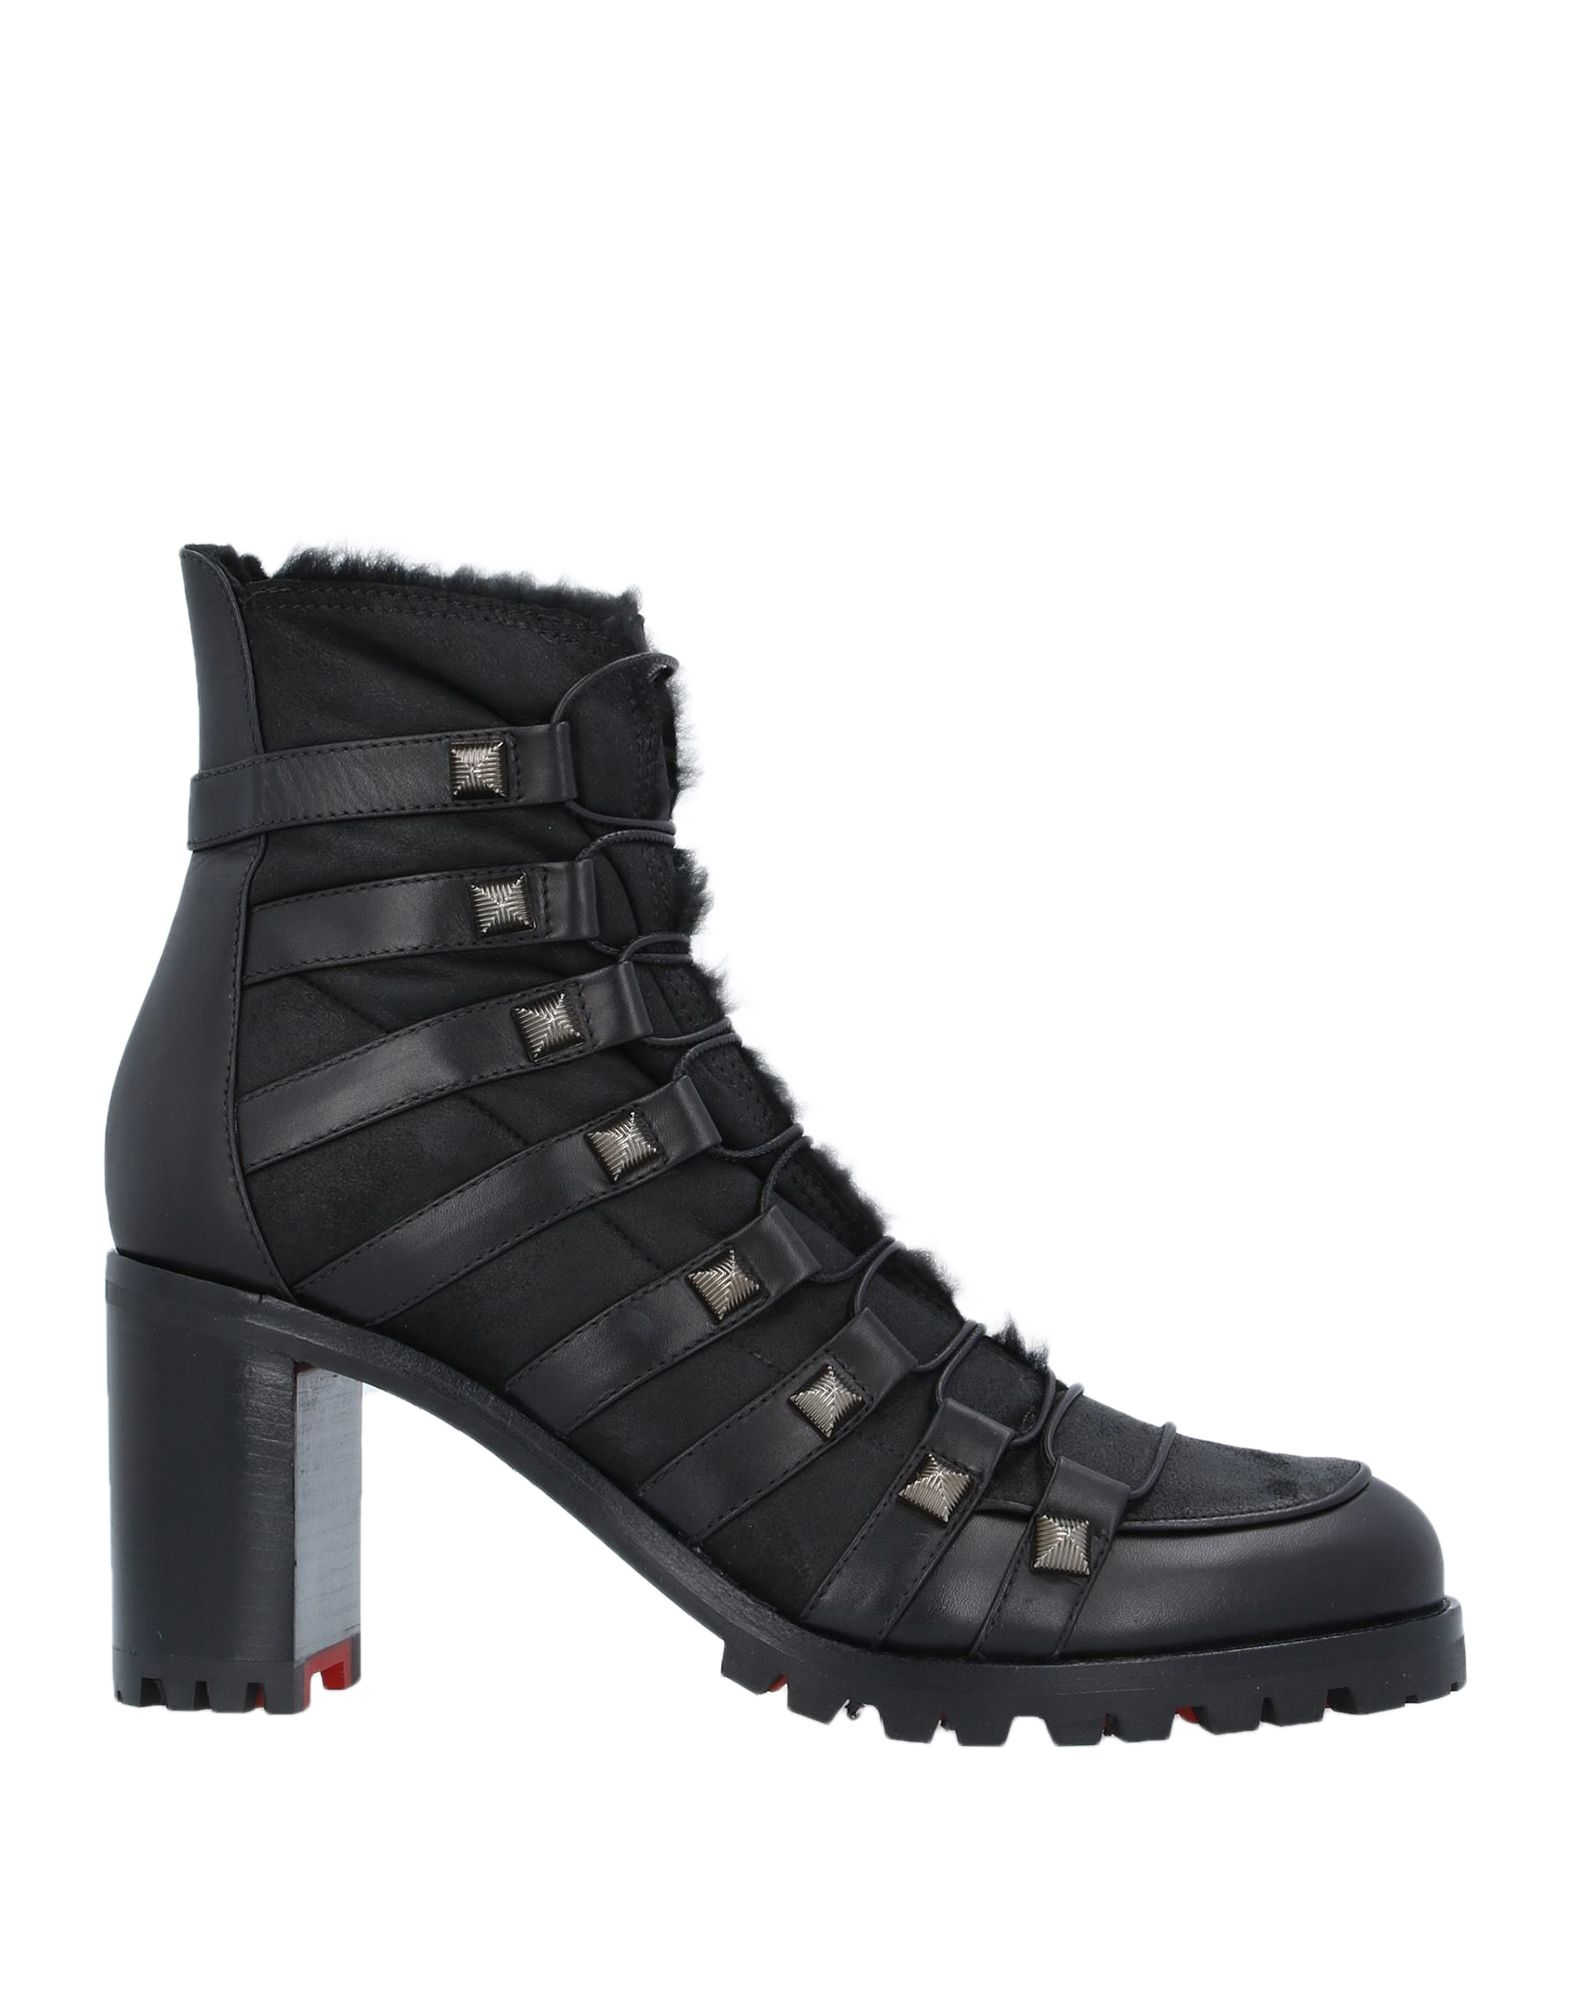 CHRISTIAN LOUBOUTIN Ankle boots. leather, studs, solid color, laces, round toeline, square heel, lined in goat hair, lug sole, contains non-textile parts of animal origin, small sized. Soft Leather